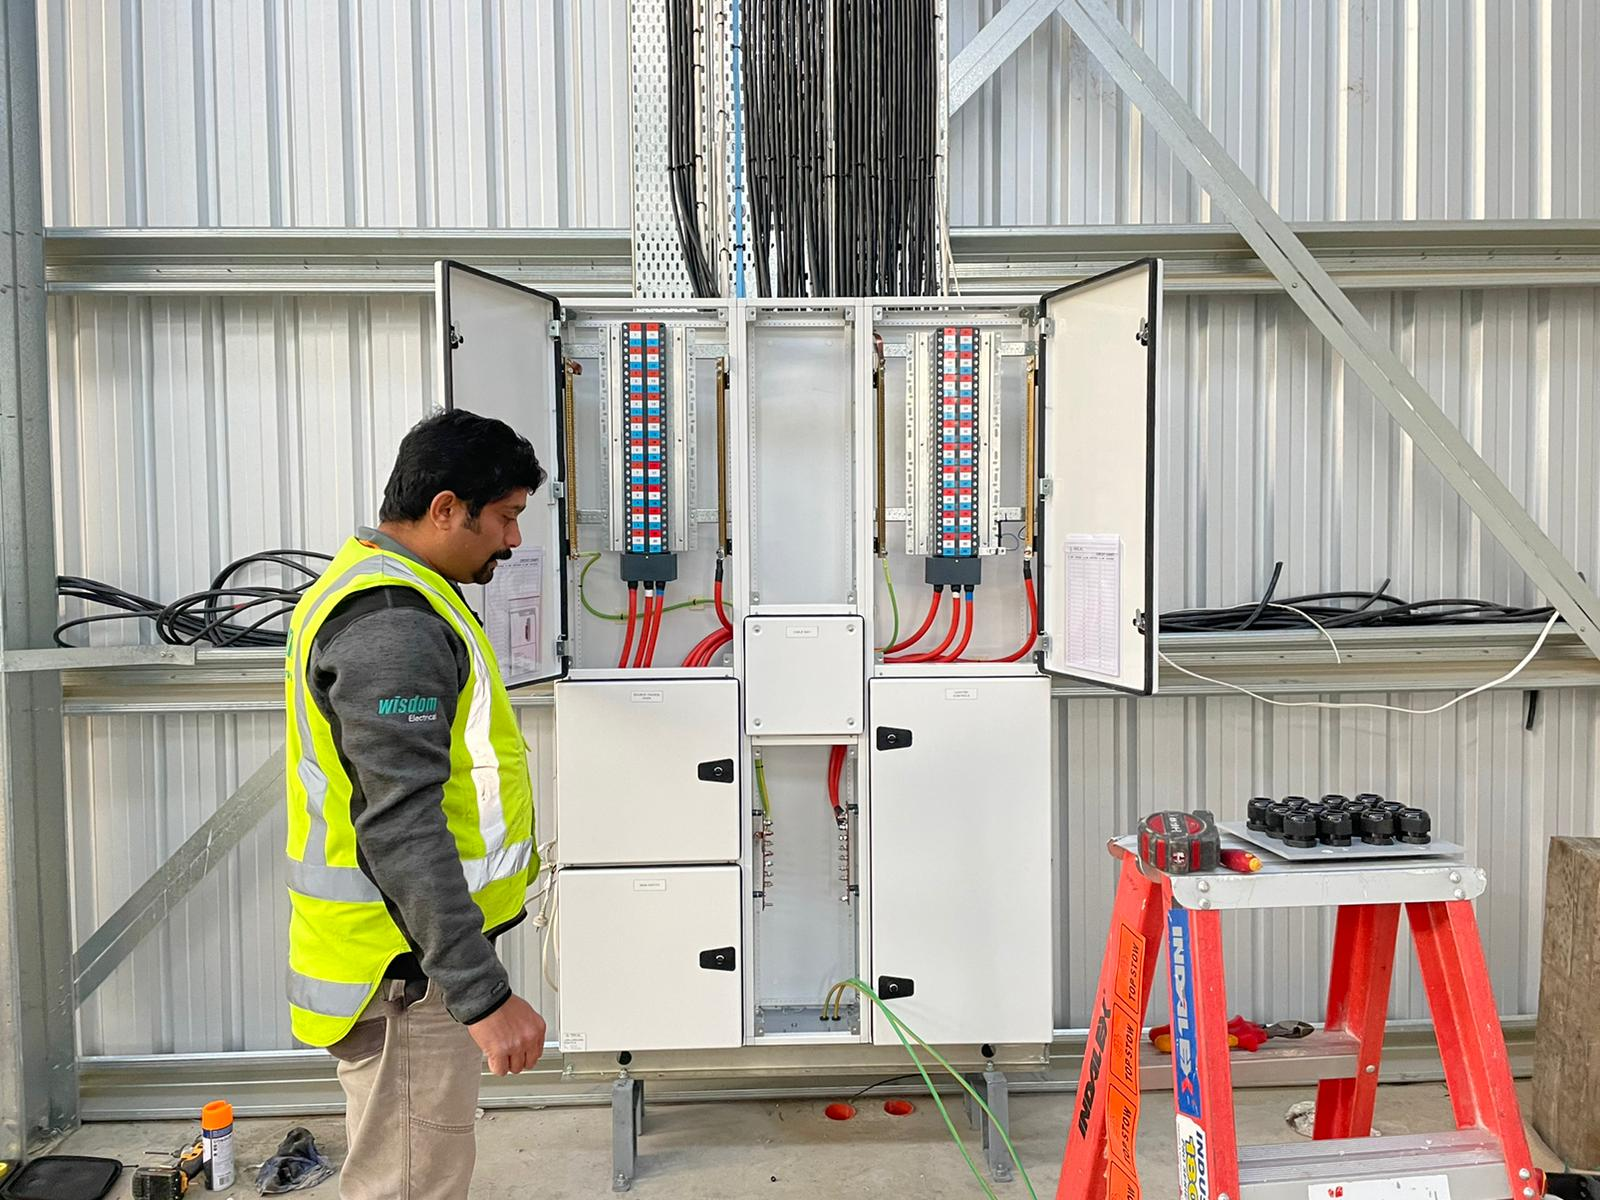 Industrial electric work